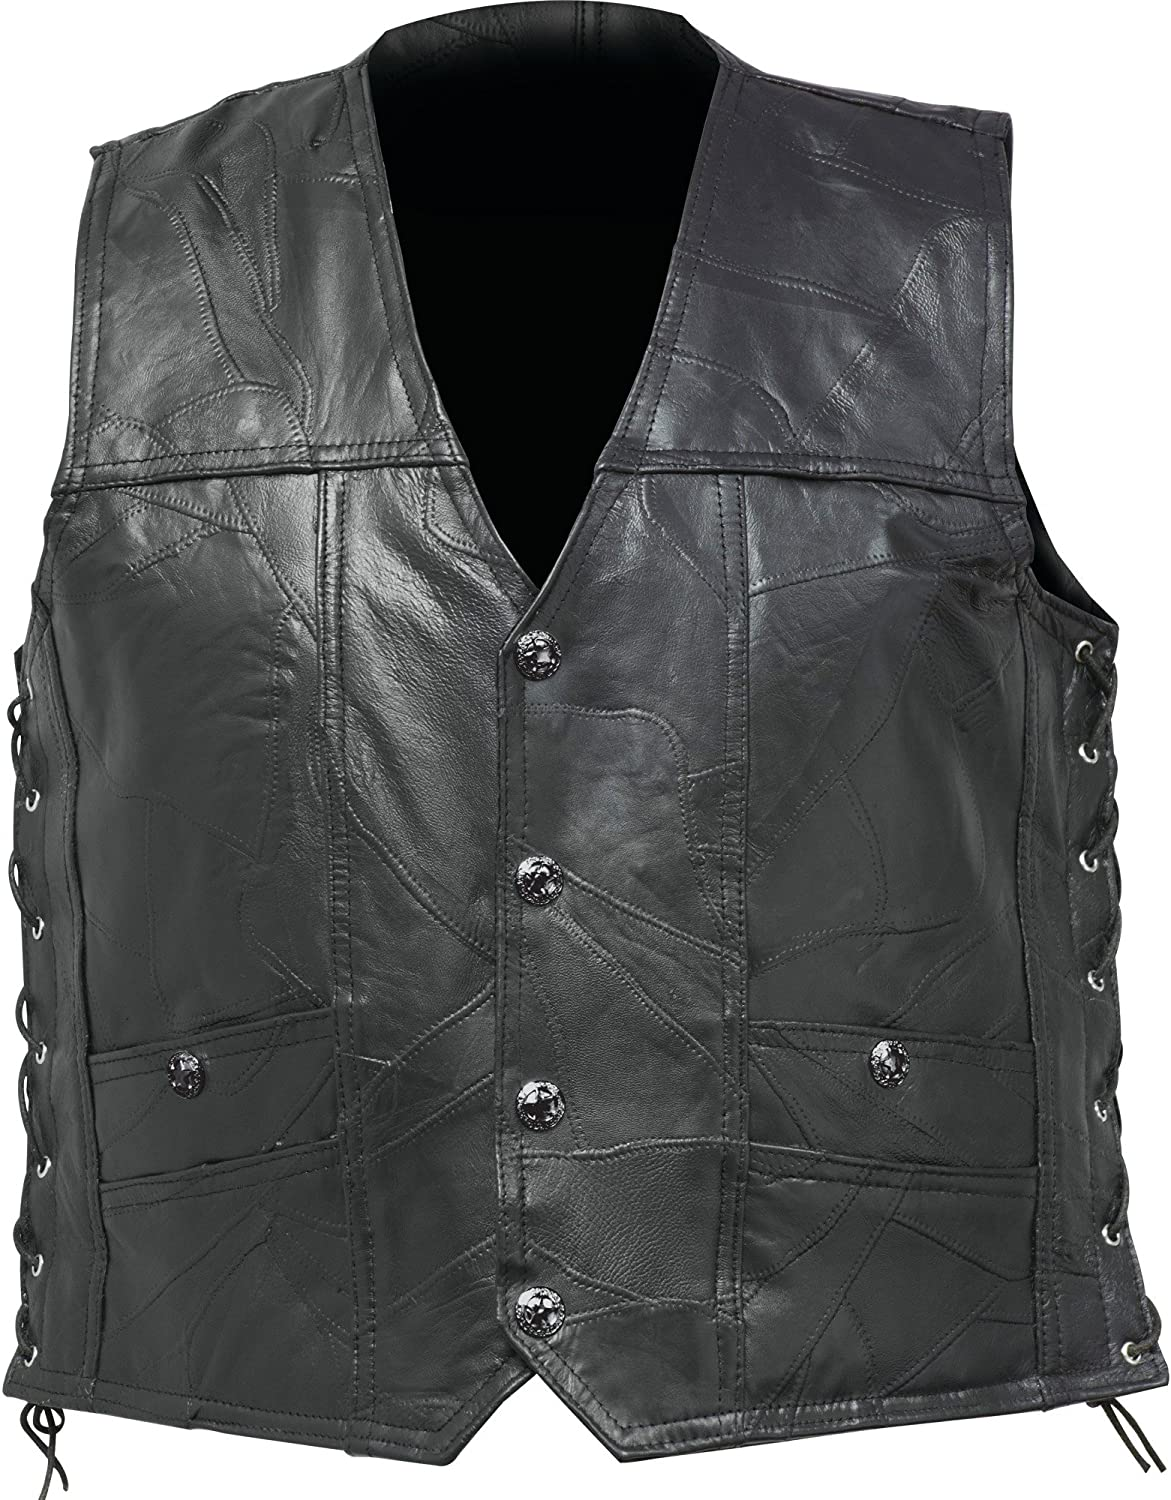 Genuine Buffalo Leather Concealed Carry Vest No Patches